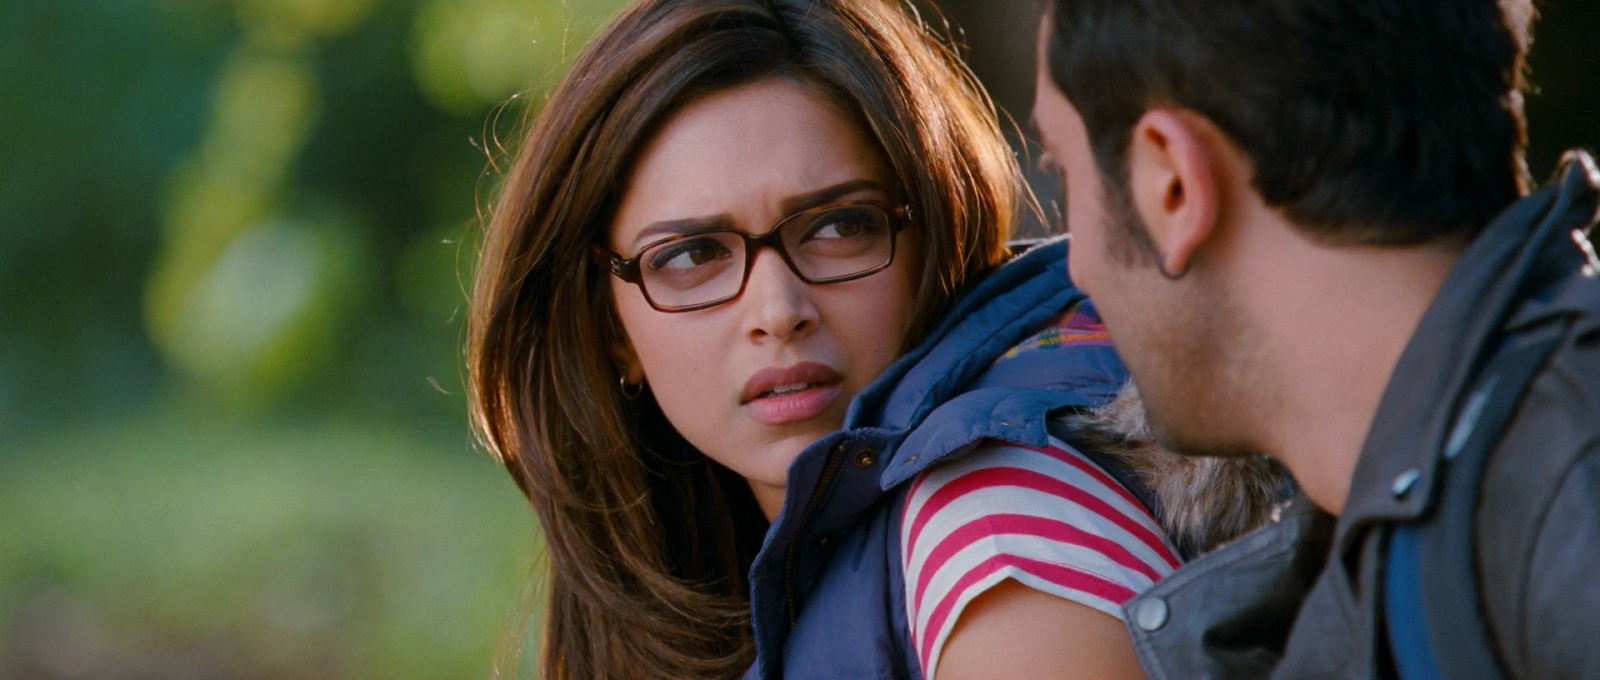 yeh jawaani hai deewani movie songs free mp3 download : grand cinema